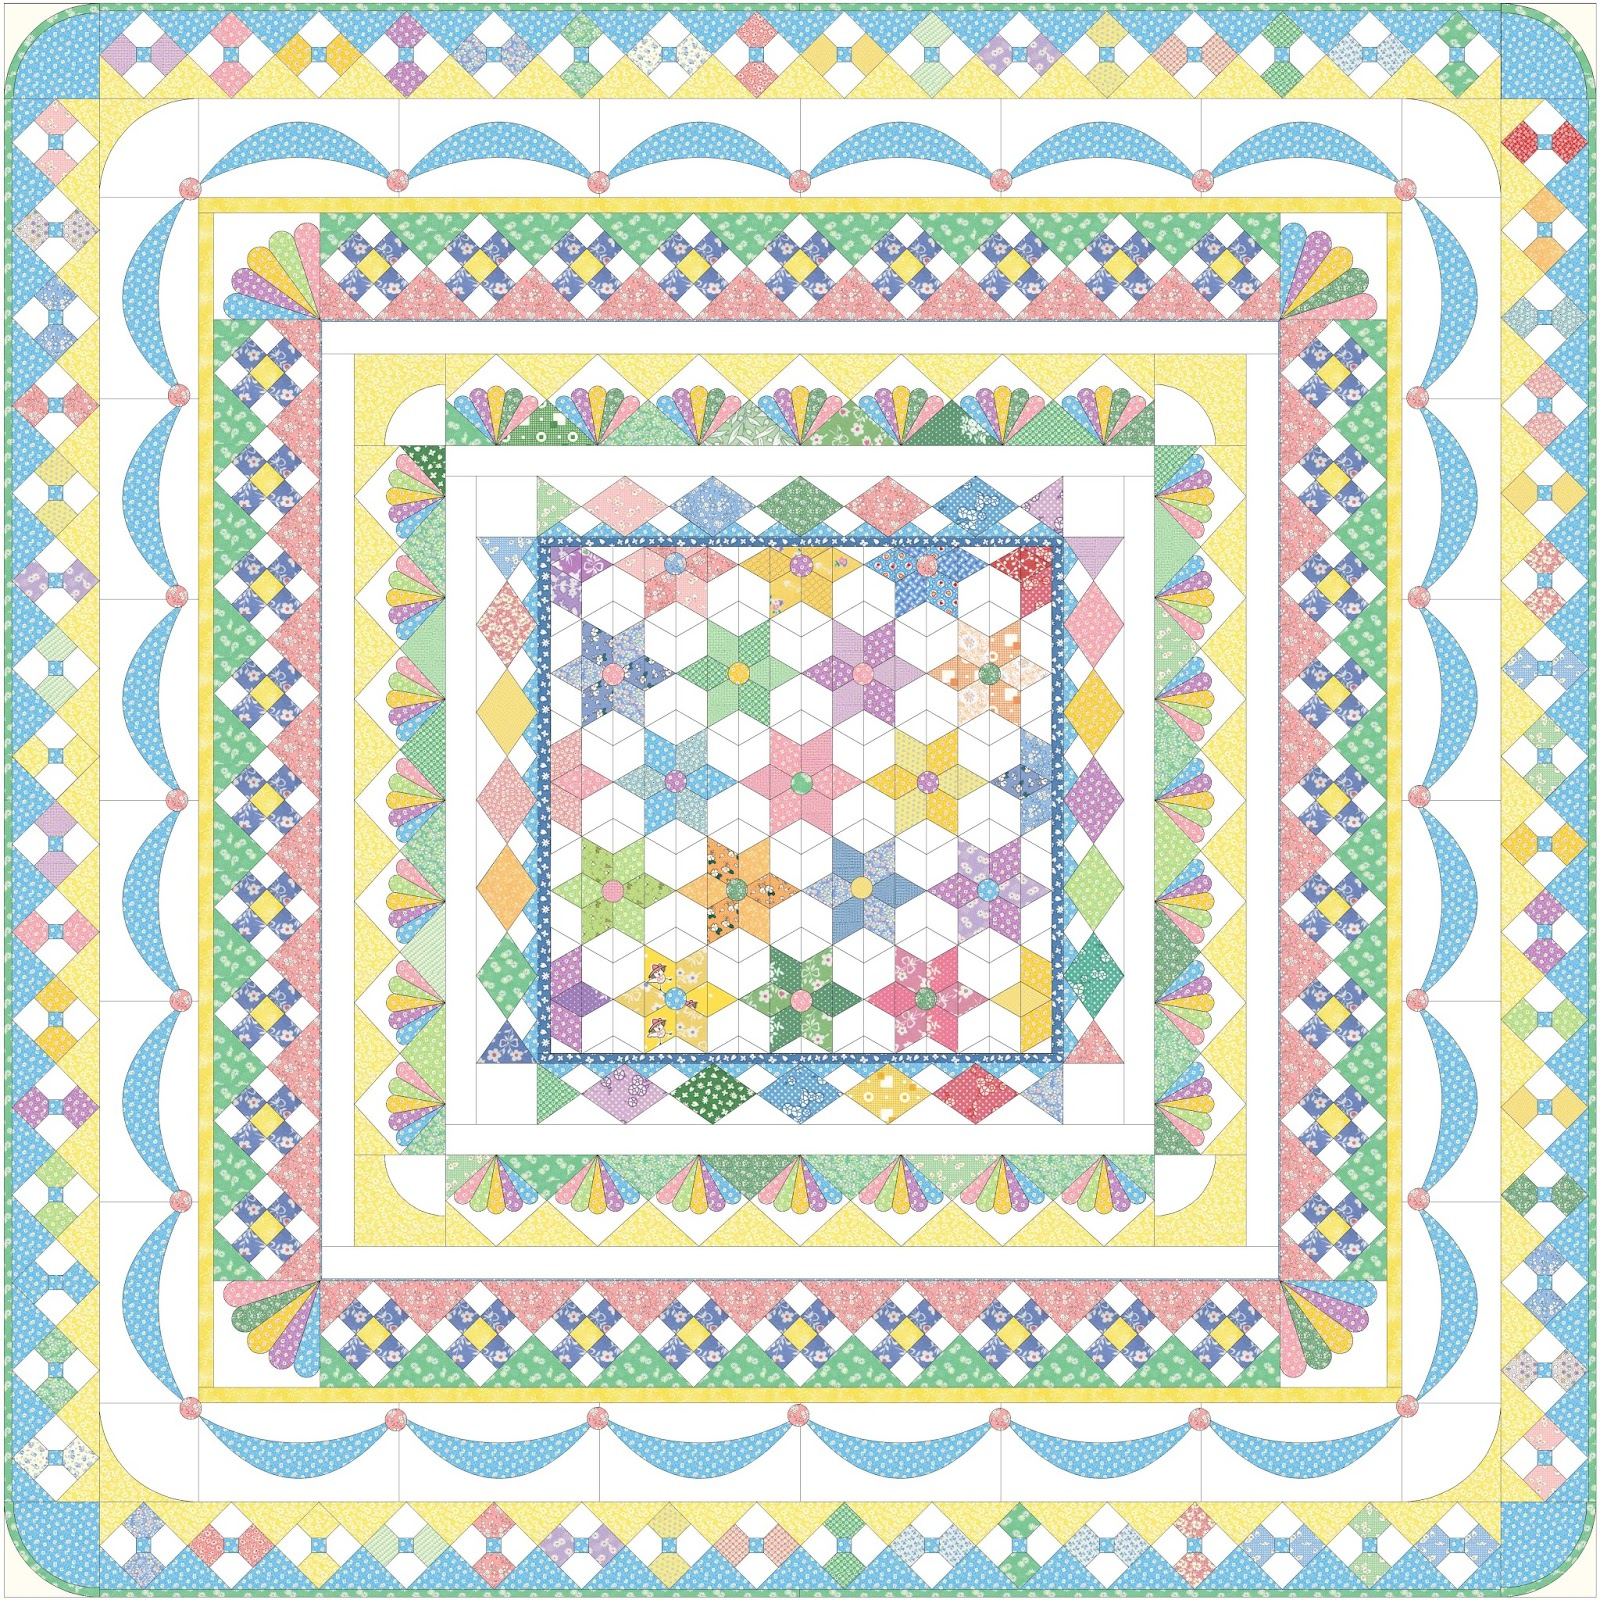 halo what star one this com learn s quilt bom thequiltshow it medallion month sue variation of a the feathered favorite block blocks calls incorporates center is